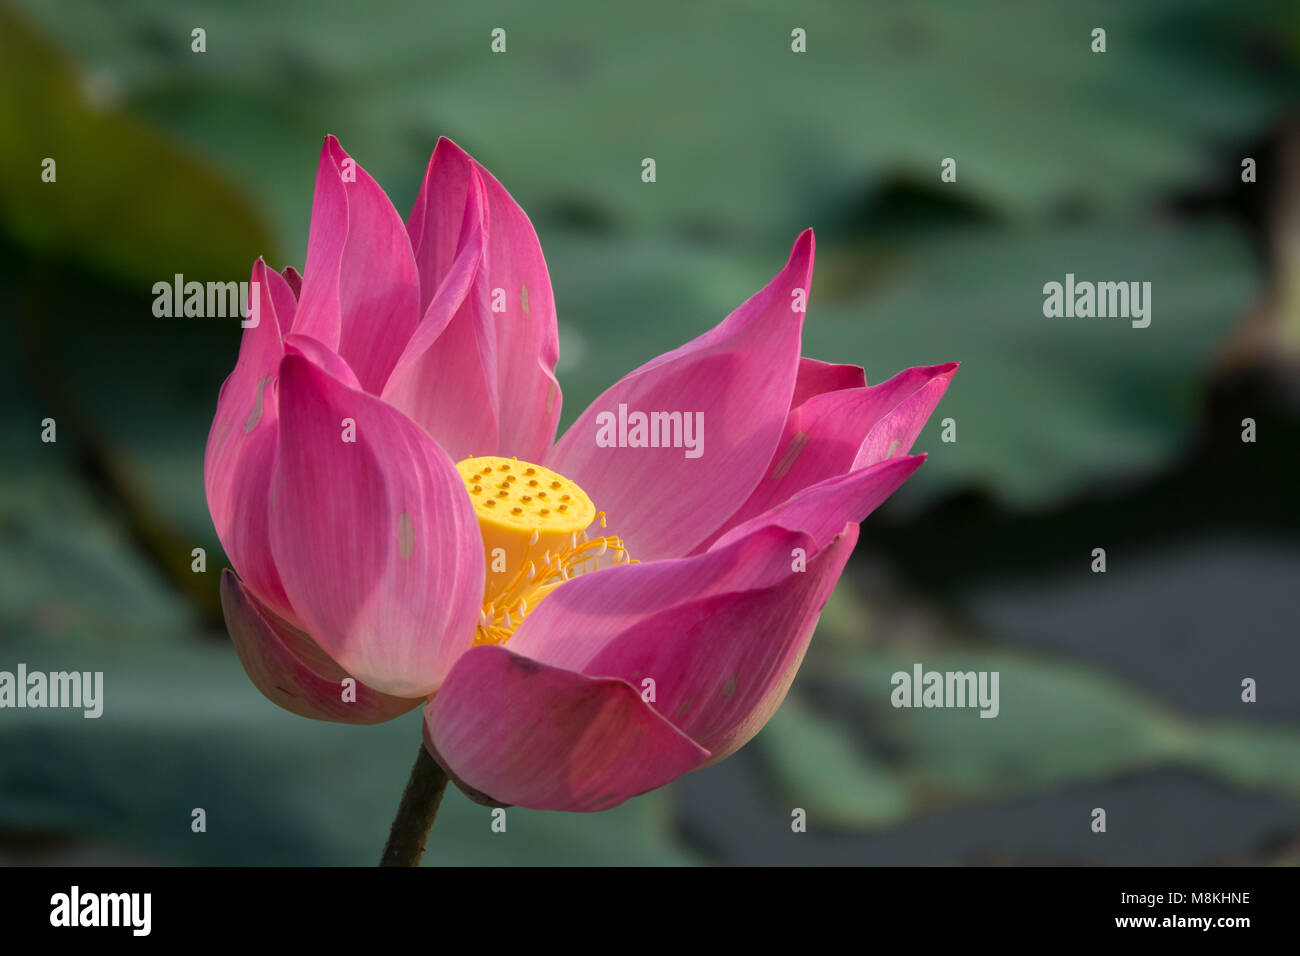 pink lotus flower royalty high quality free stock footage of a